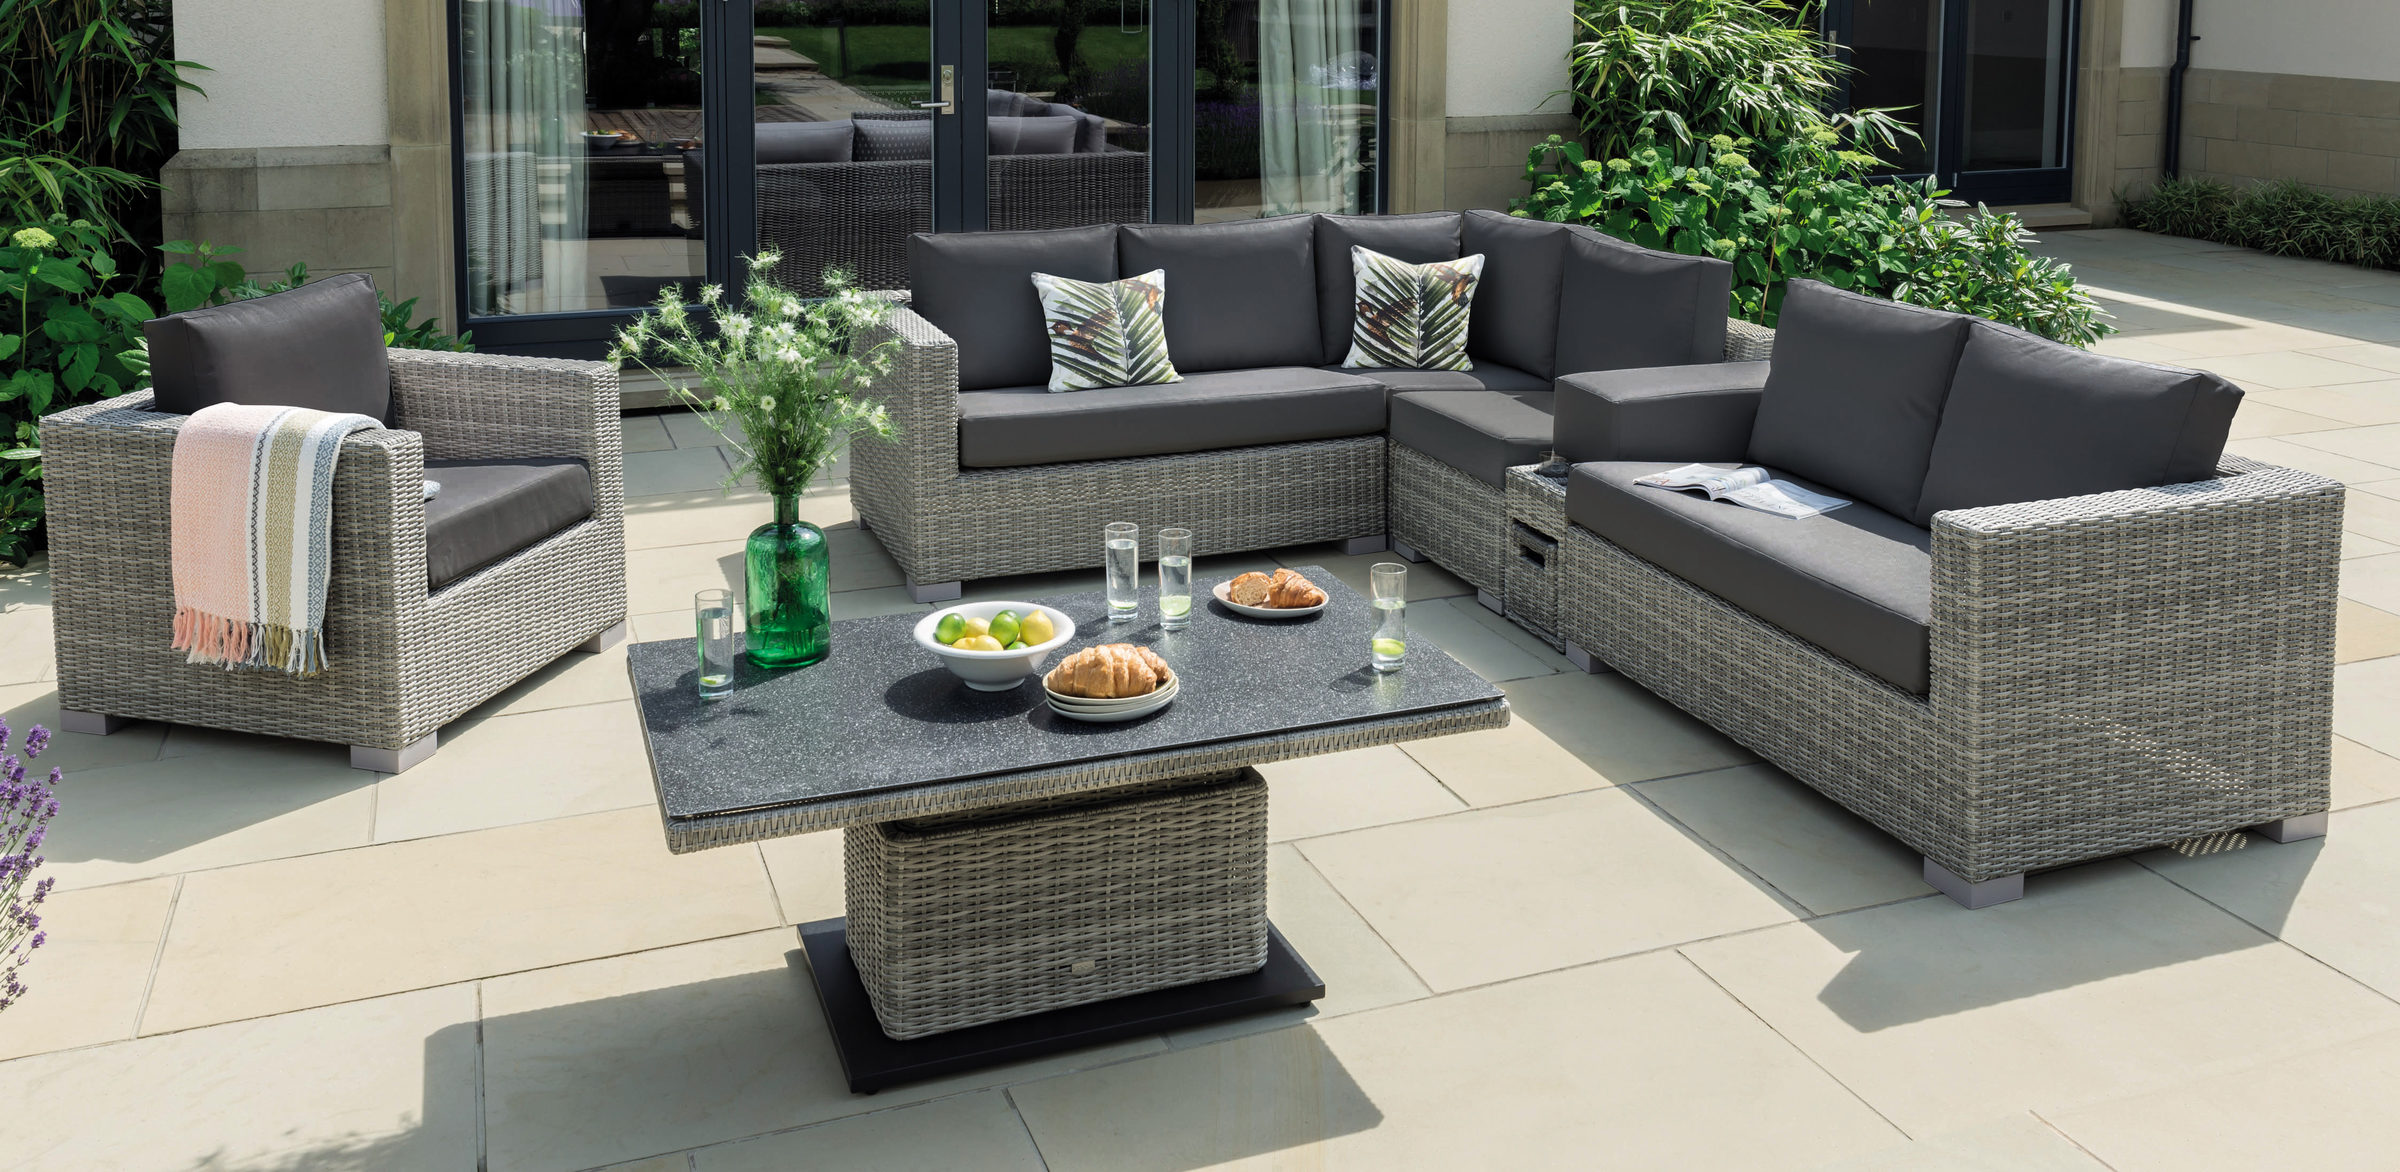 Life Aya Square Lounge Corner Set with Large Table and Lounge Chair